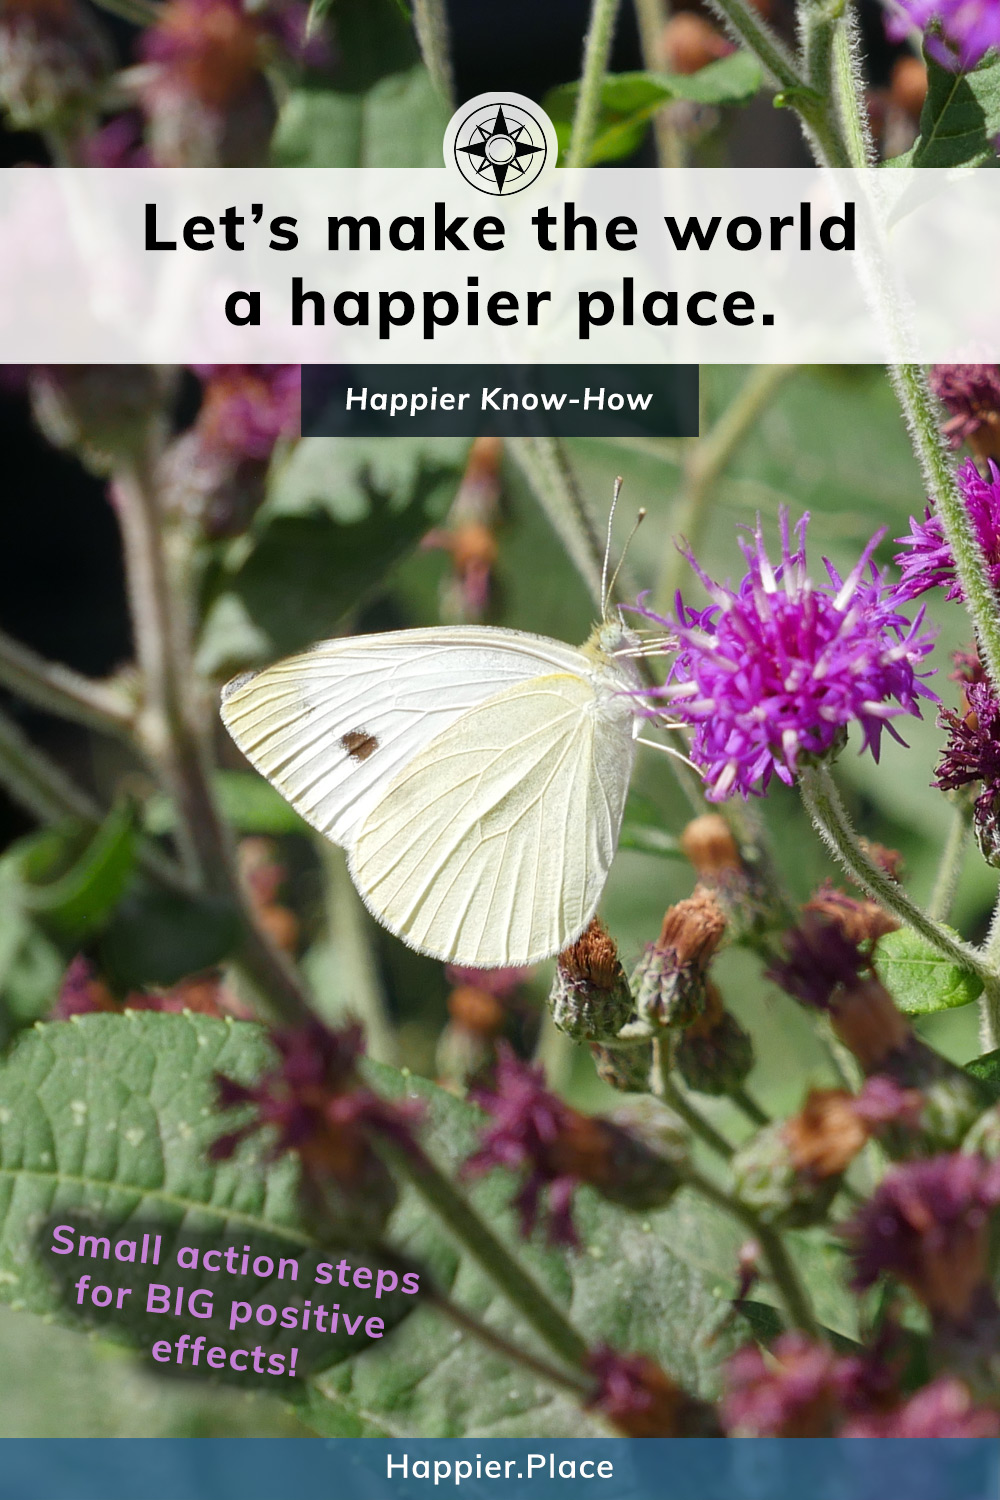 Let's make the world a happier place with action steps, butterfly, happier know-how